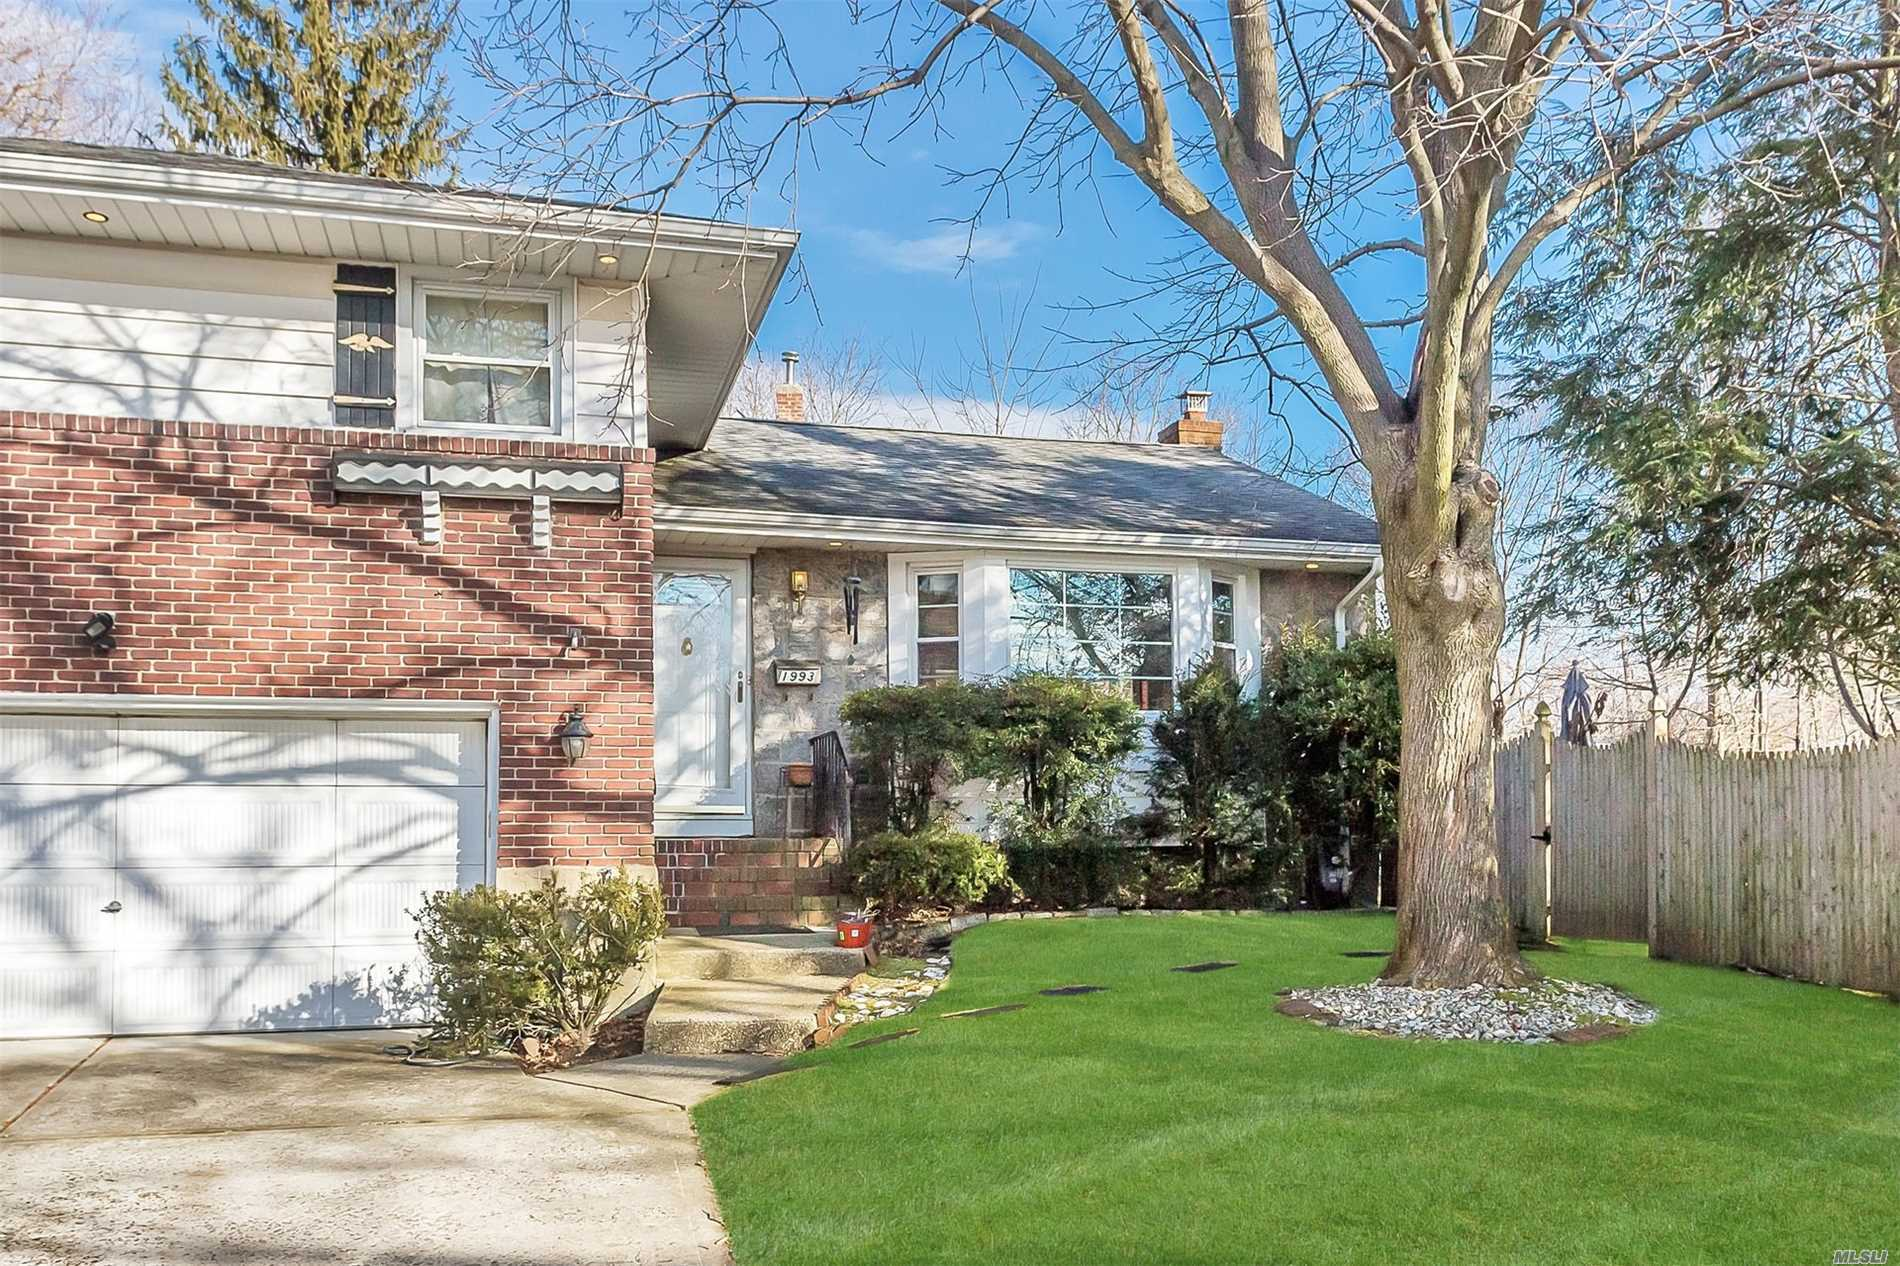 Beautiful 4 Level 3 Bdrm 2 1/2 Bath Merrick Manor Split On A Cul-De-Sac On Private, Park-Like Grounds! Eik, Living Rm W/Gas Fireplace, Fdr, Hardwood Floors, Den W/1/2 Bath, Finished Basement. Updates Include: 2013 Gas Heating System, Hw Heater, 200 Amp Electric, 2016 Cac Compressor, 2008 Updated Bathrooms, Windows In Living And Dining Rm. Won't Last!